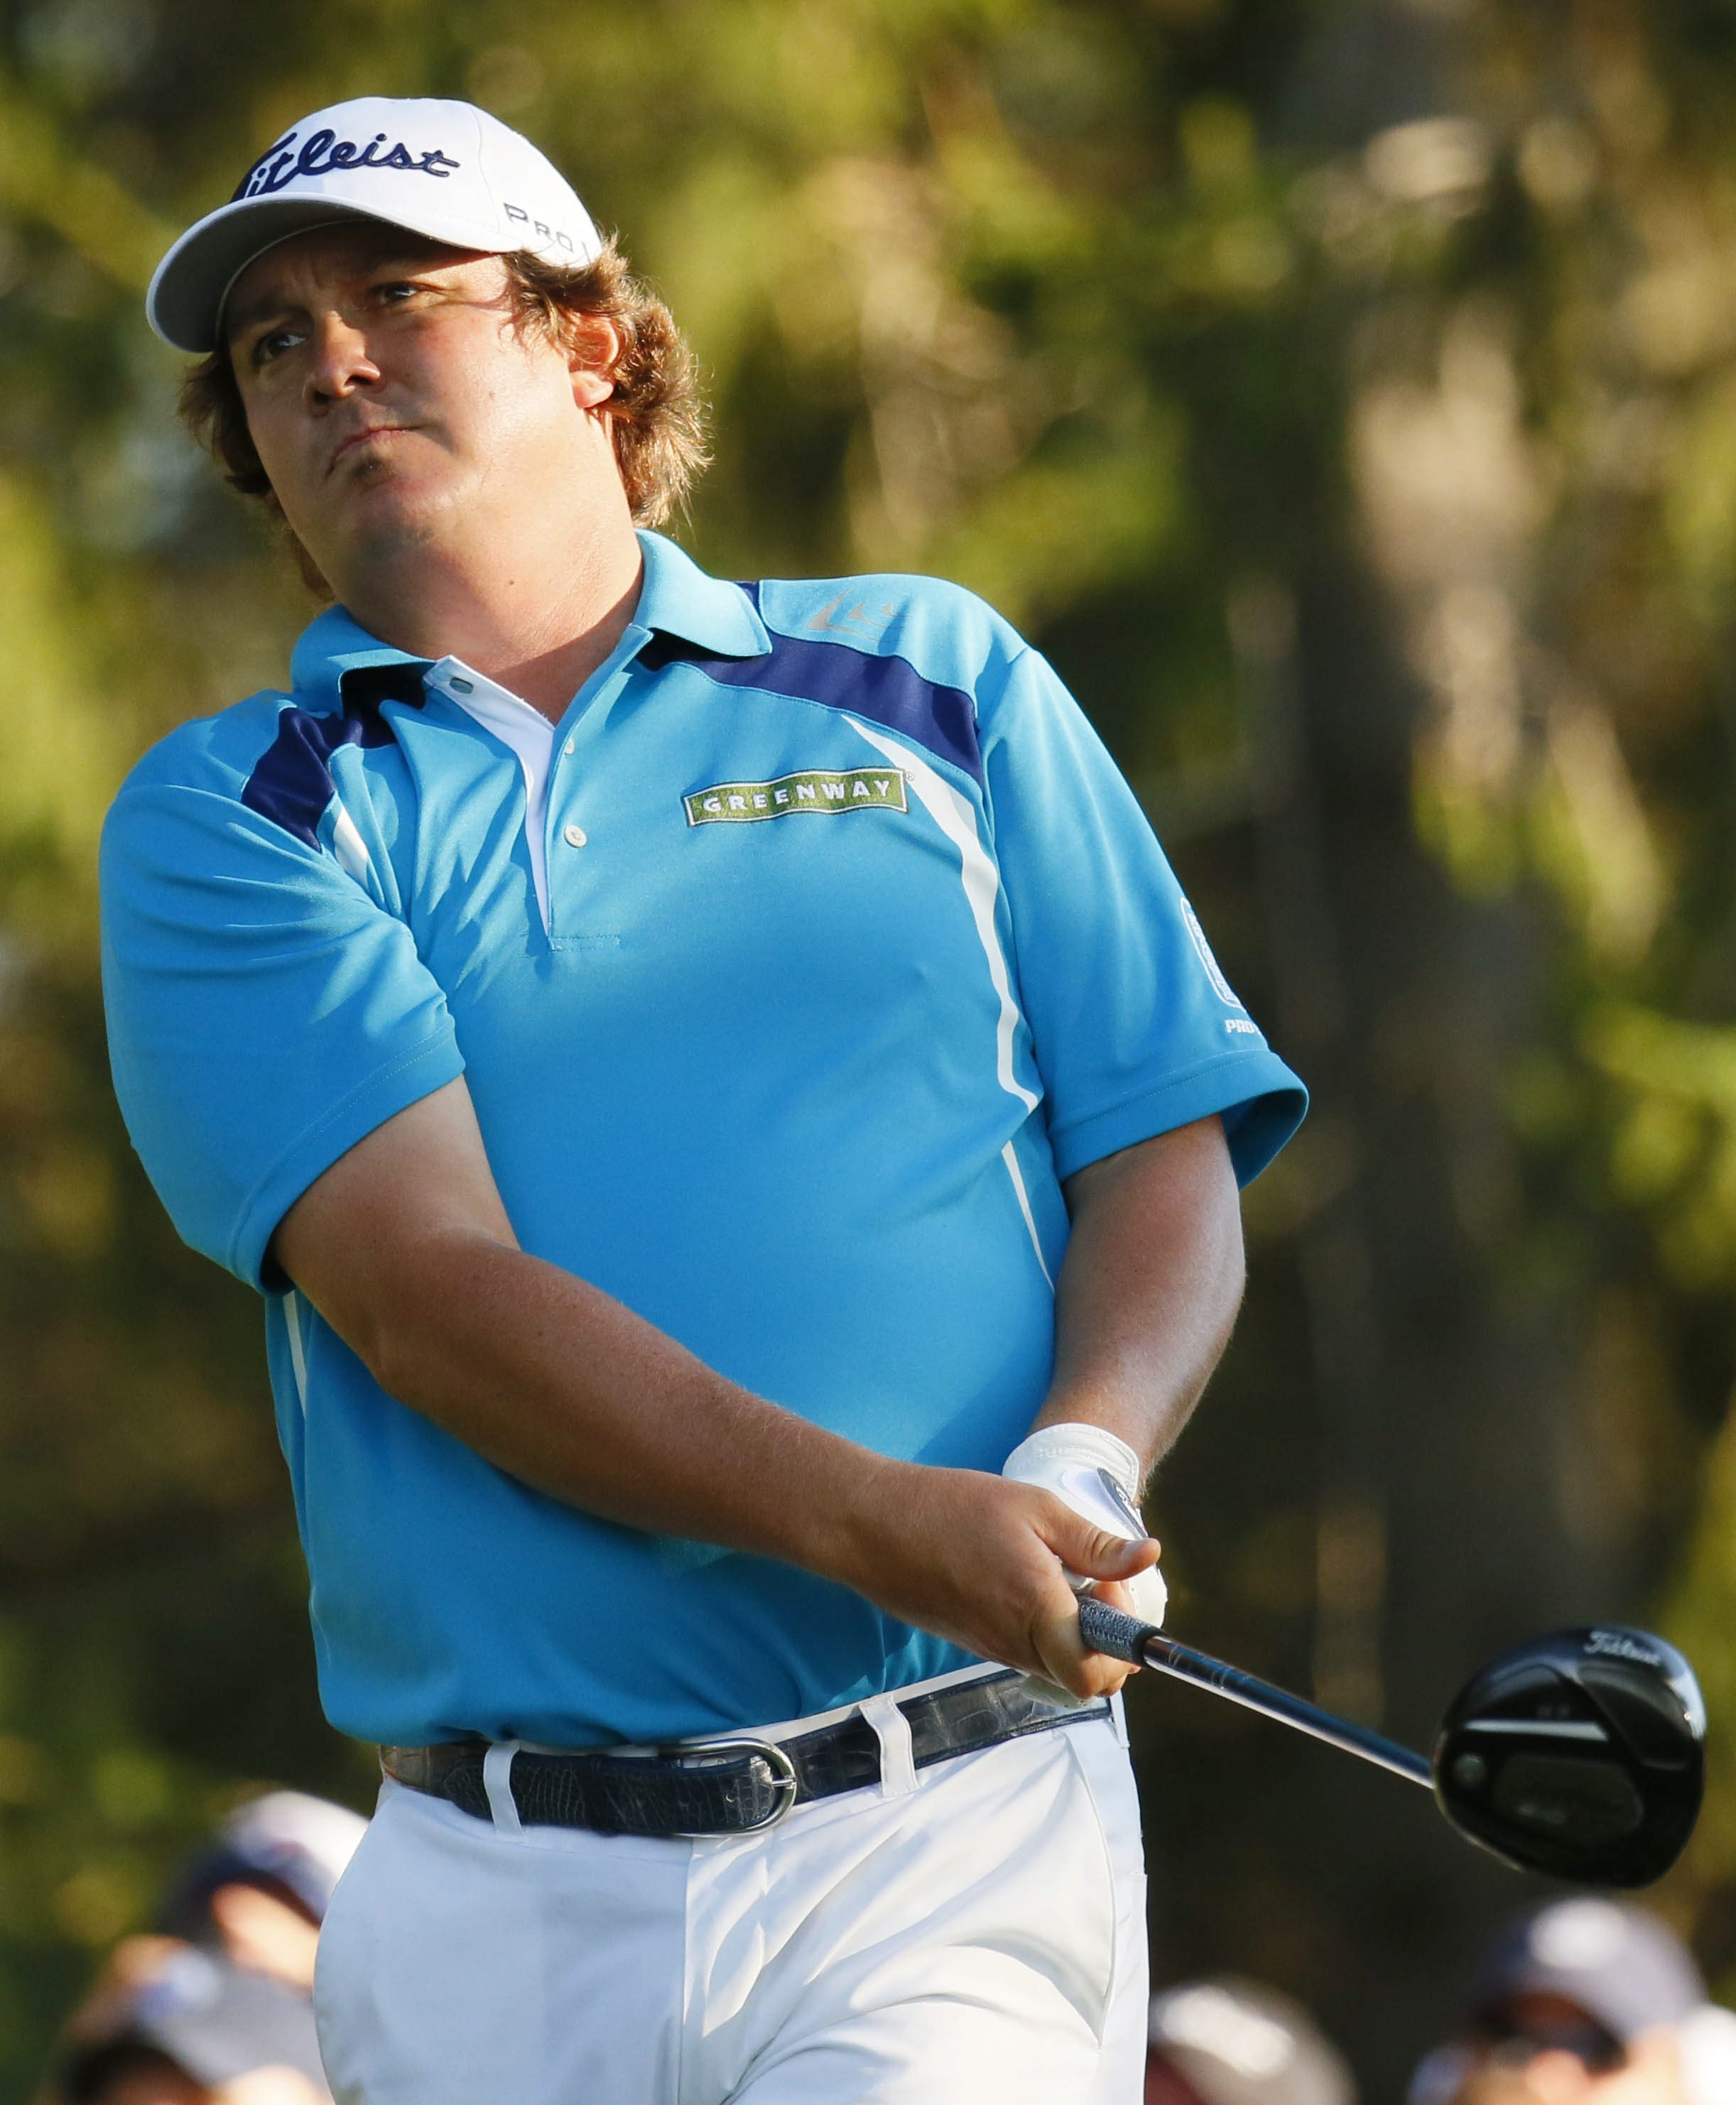 Jason Dufner said it was great to win in a city with such knowledgeable fans.